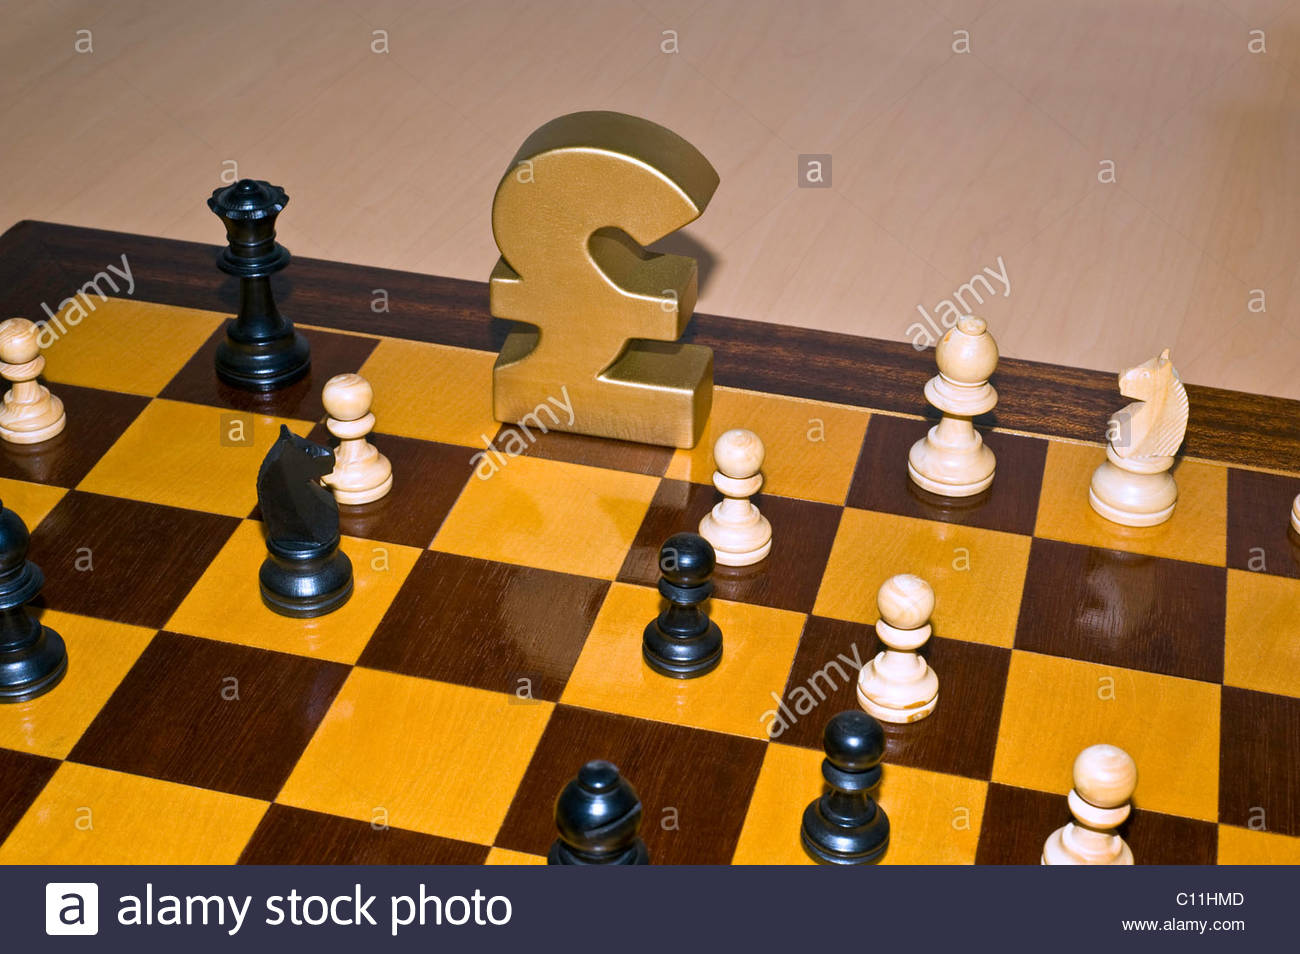 British pound sterling symbol in the kings position on a chess board british pound sterling symbol in the kings position on a chess board biocorpaavc Gallery